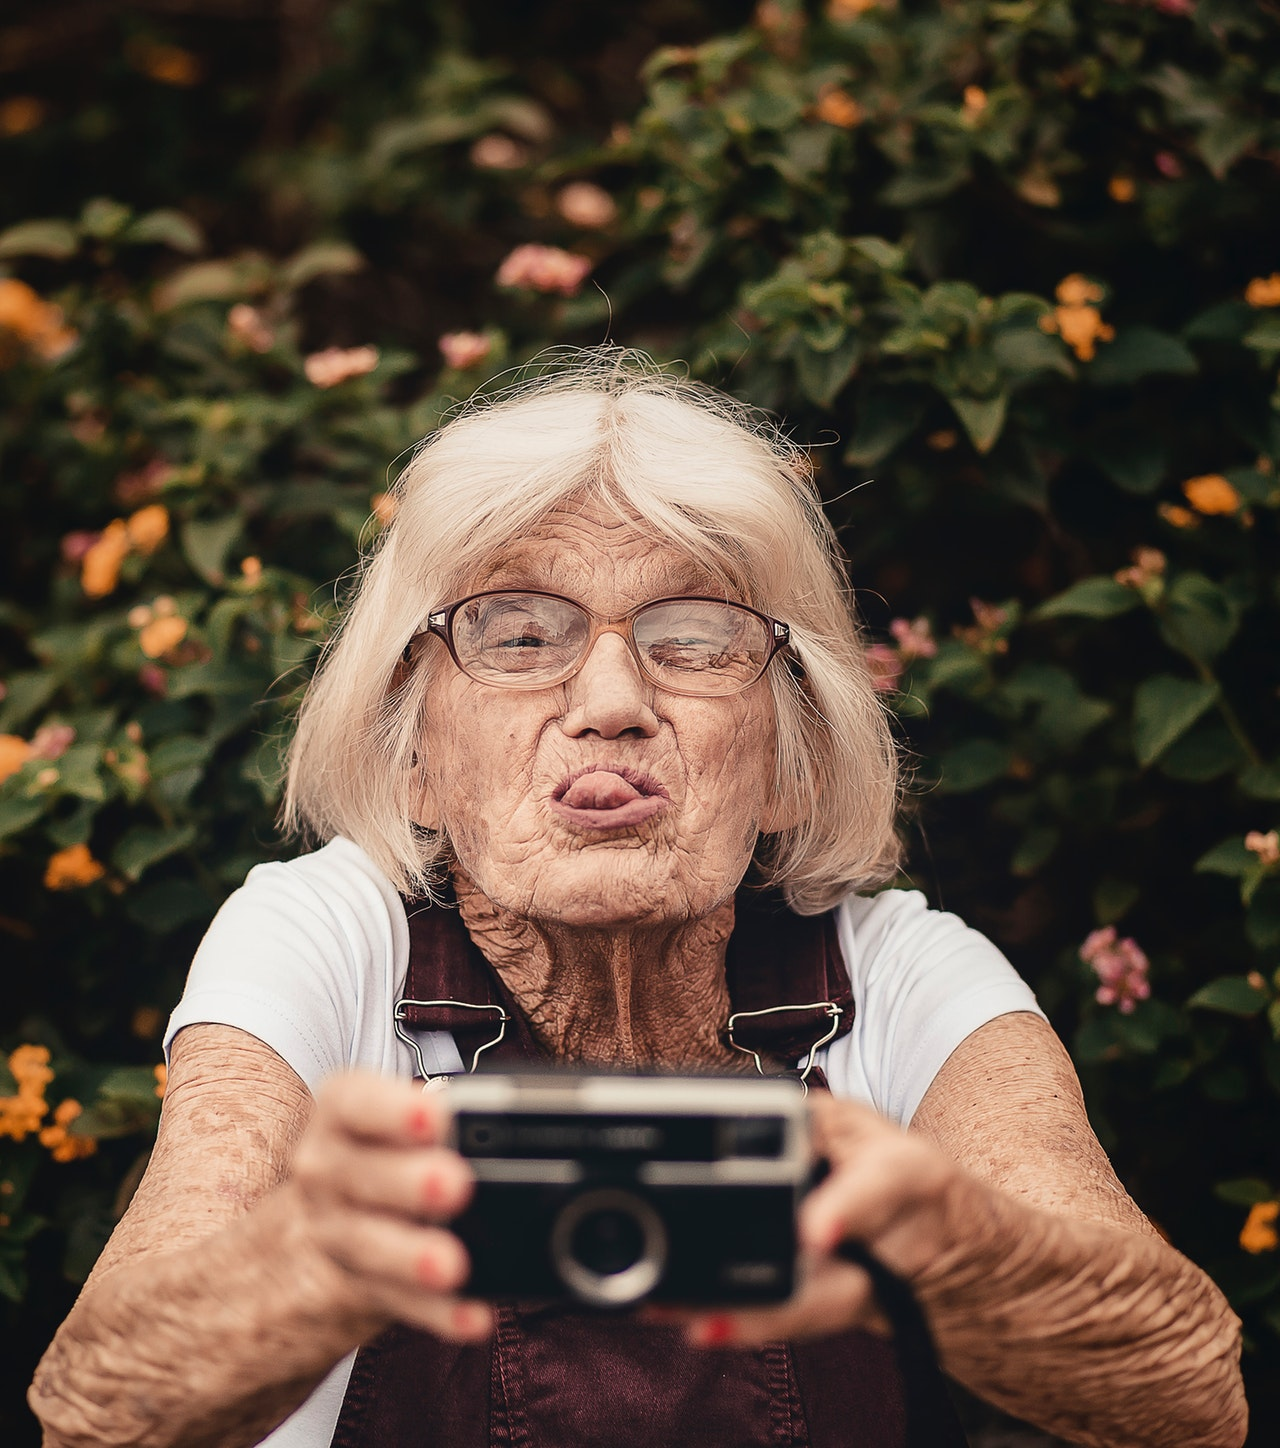 woman-taking-selfie-2050979.jpg